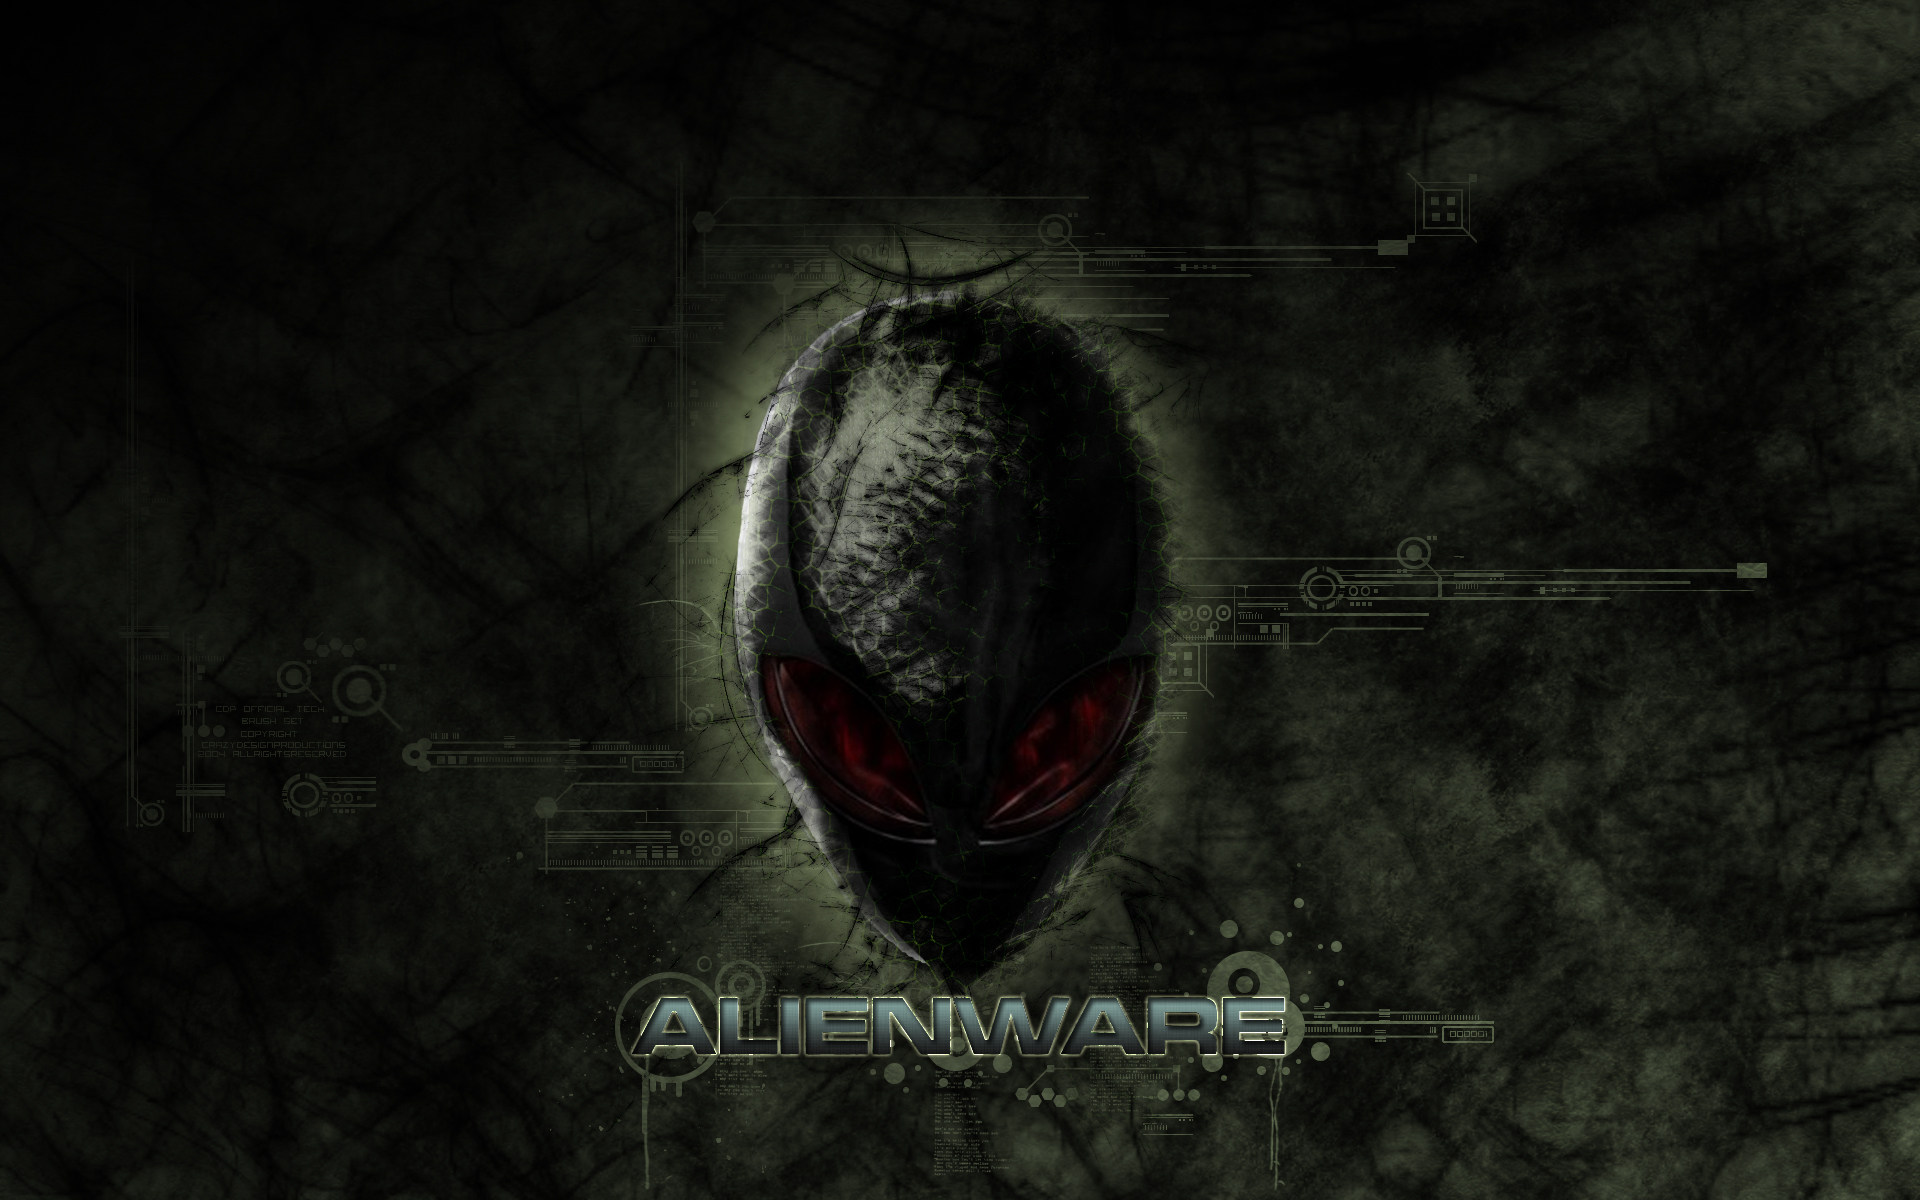 alienware full hd wallpaper and background image | 1920x1200 | id:411880